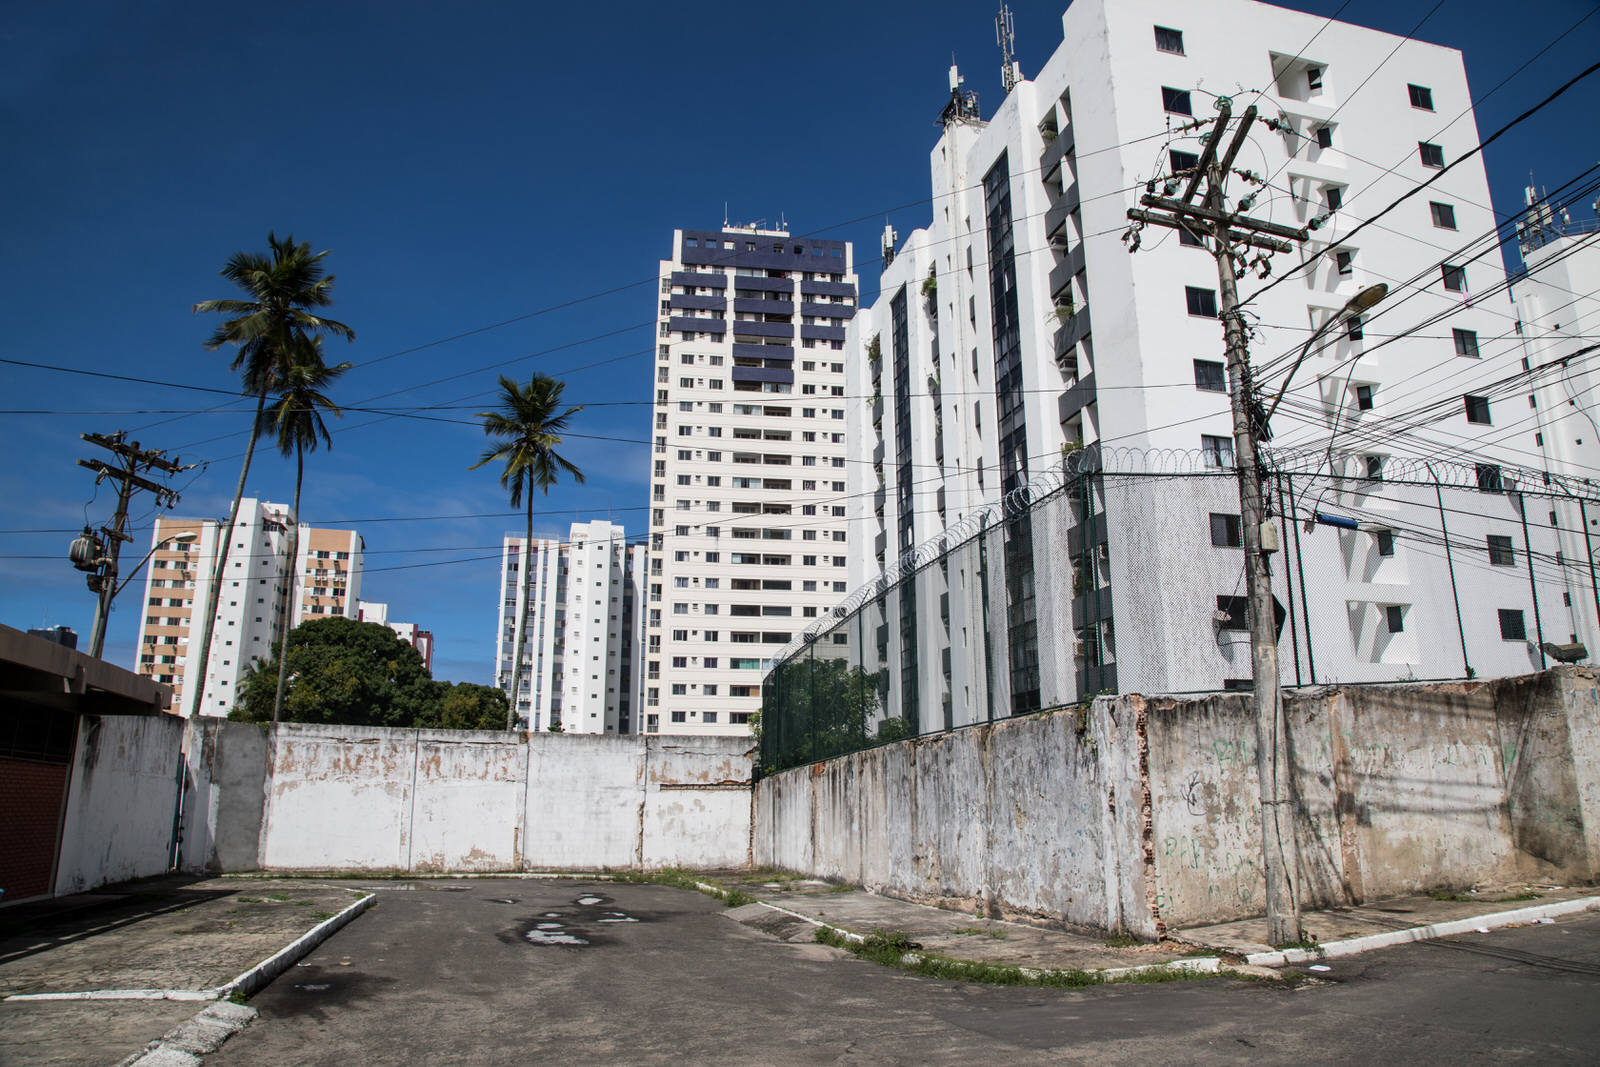 Nordeste de Amarelina is surrounded by high-income districts. Many luxury apartment blocks line the ocean front, and are separated from Nordeste de Amarelina by a wall and protected by razor wire.